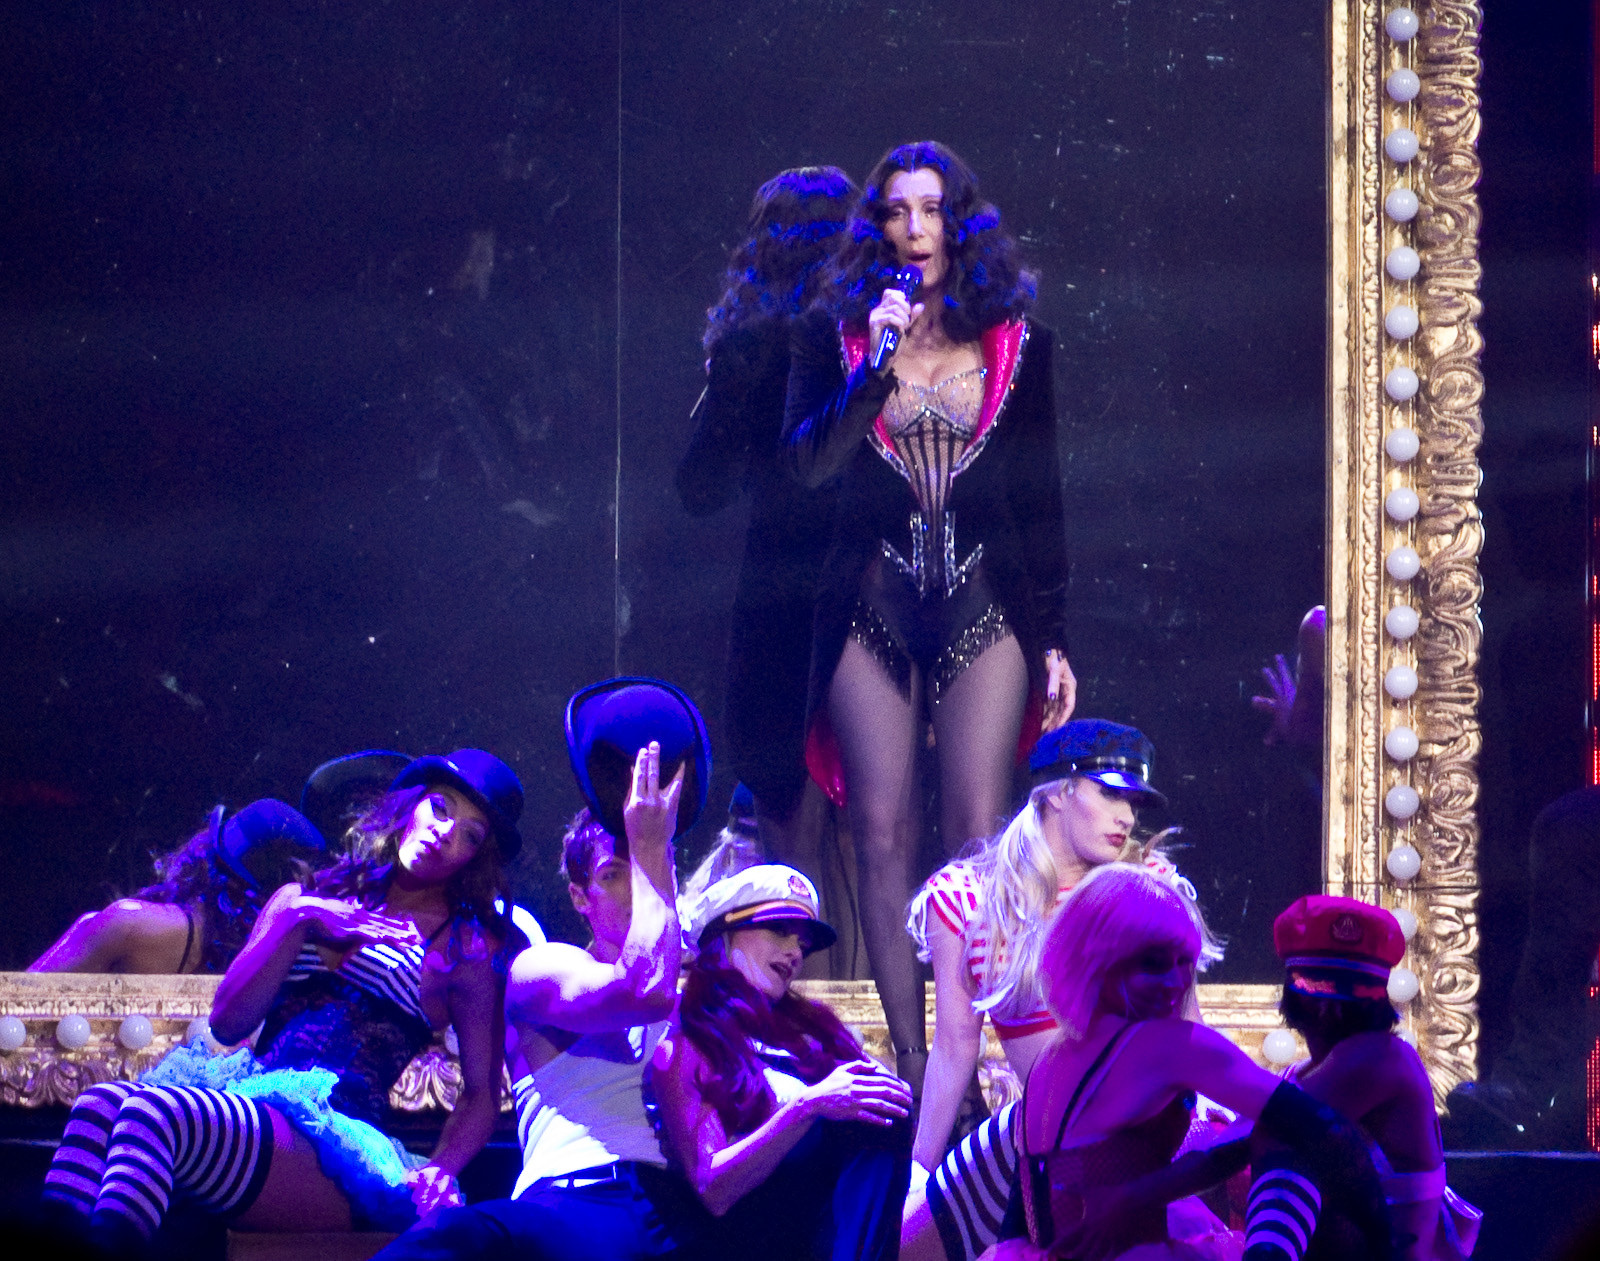 File:Cher Burlesque2 D2K.jpg - Wikimedia Commons